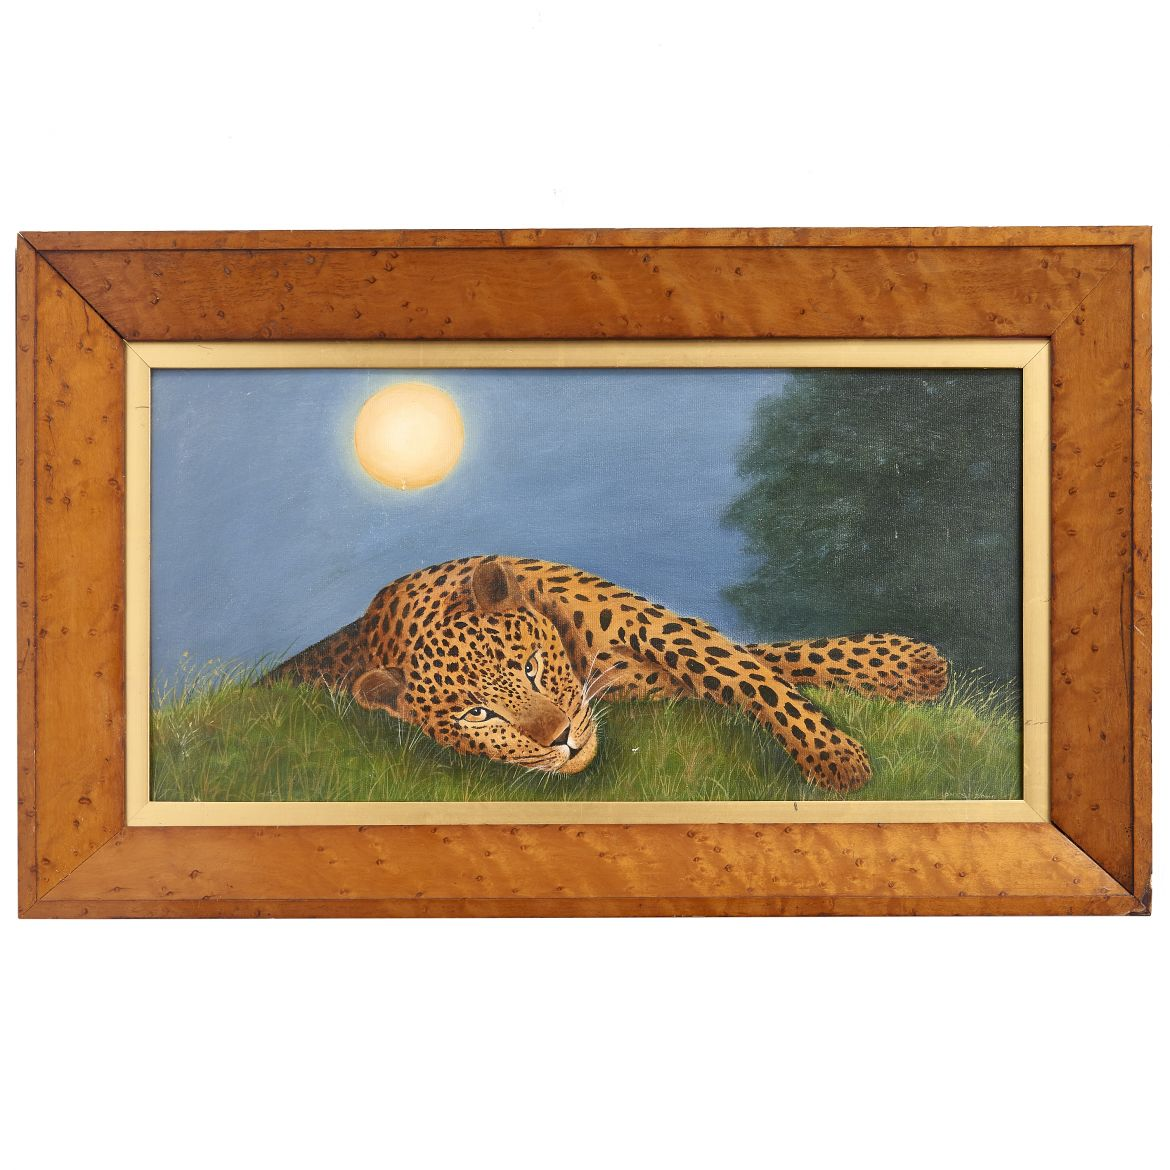 Oil Painting of a Leopard